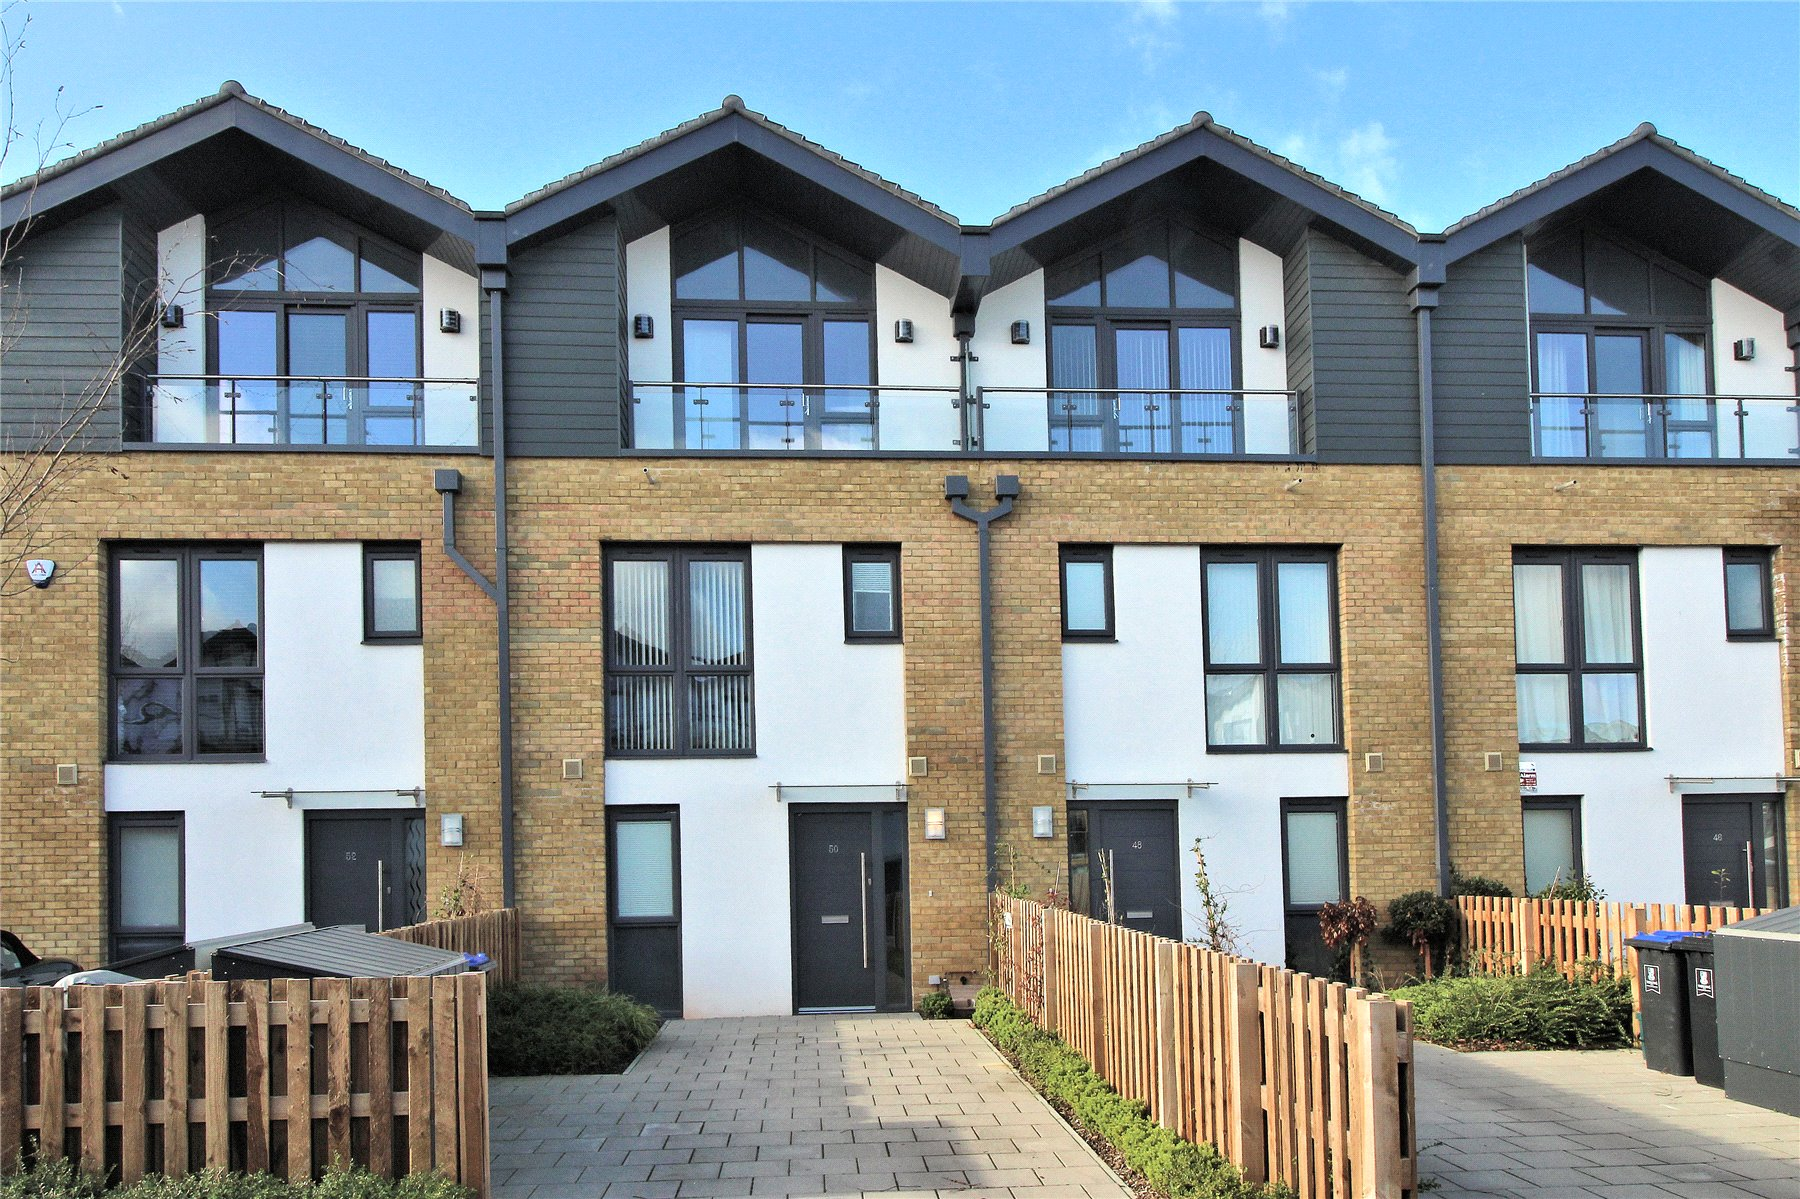 4 Bedrooms Terraced House for sale in Sycamore Avenue, Woking, Surrey, GU22